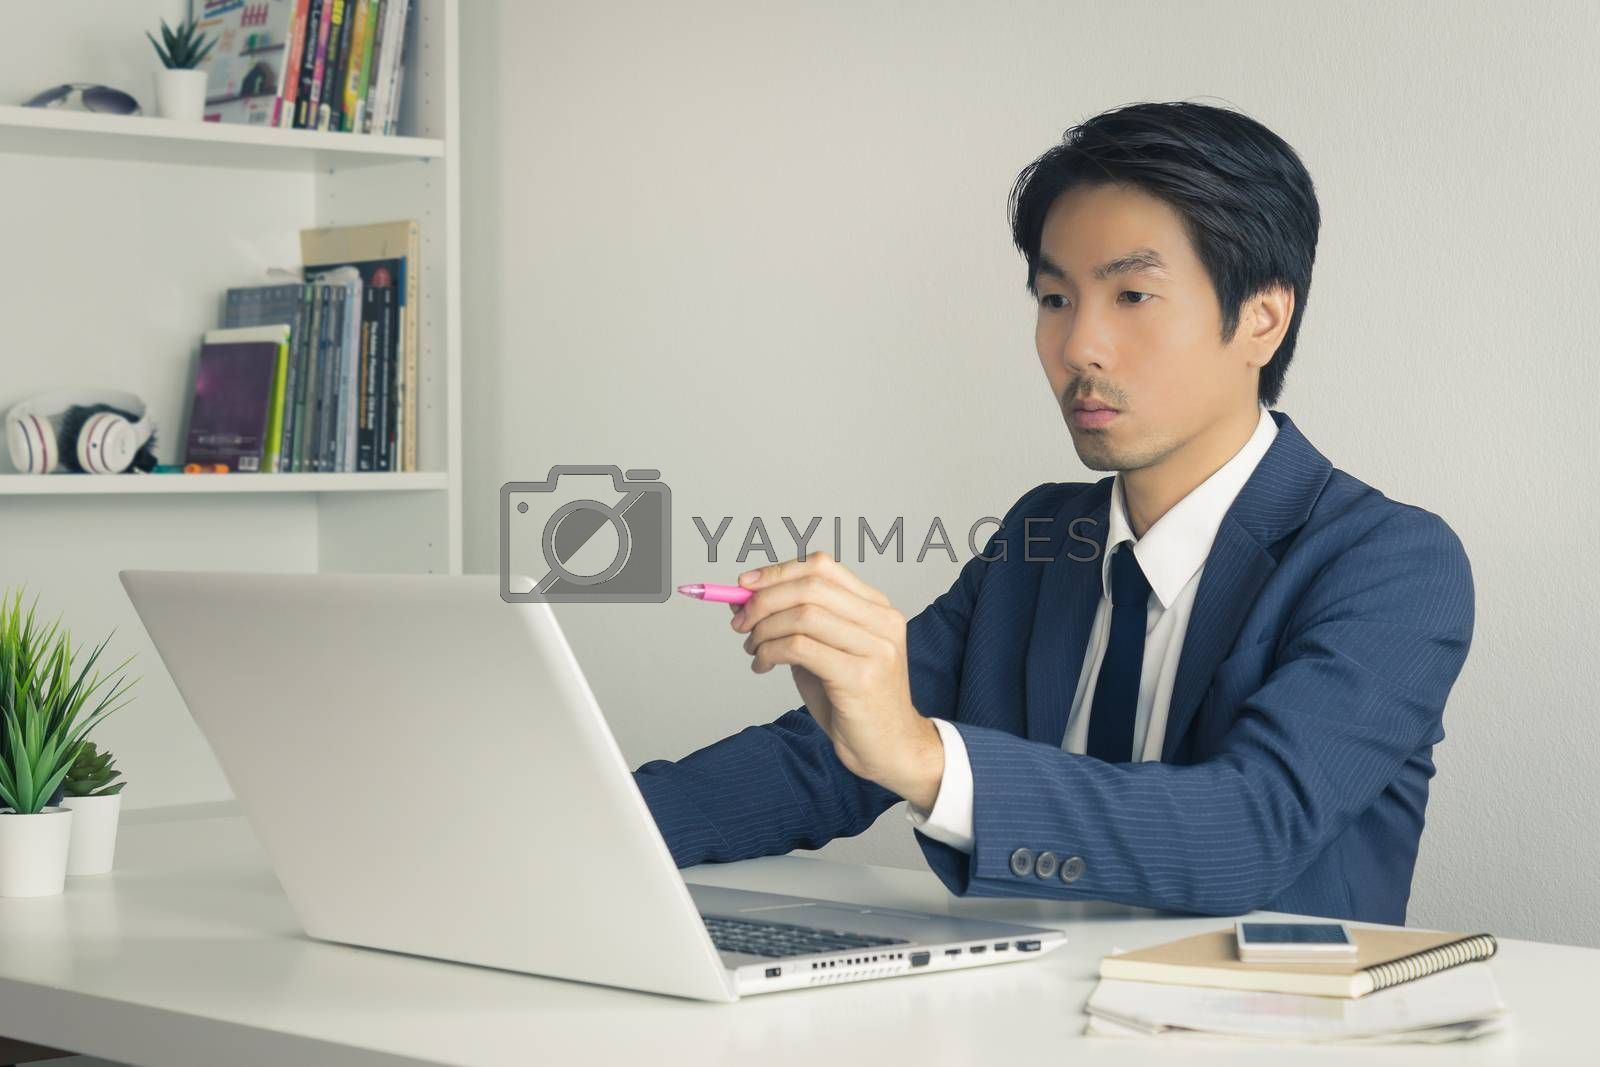 Asian Financial Advisor or Asian Consulting Businessman in Suit Suggest Customer Via Internet. Asian Financial Advisor or Asian Consulting Businessman working in office